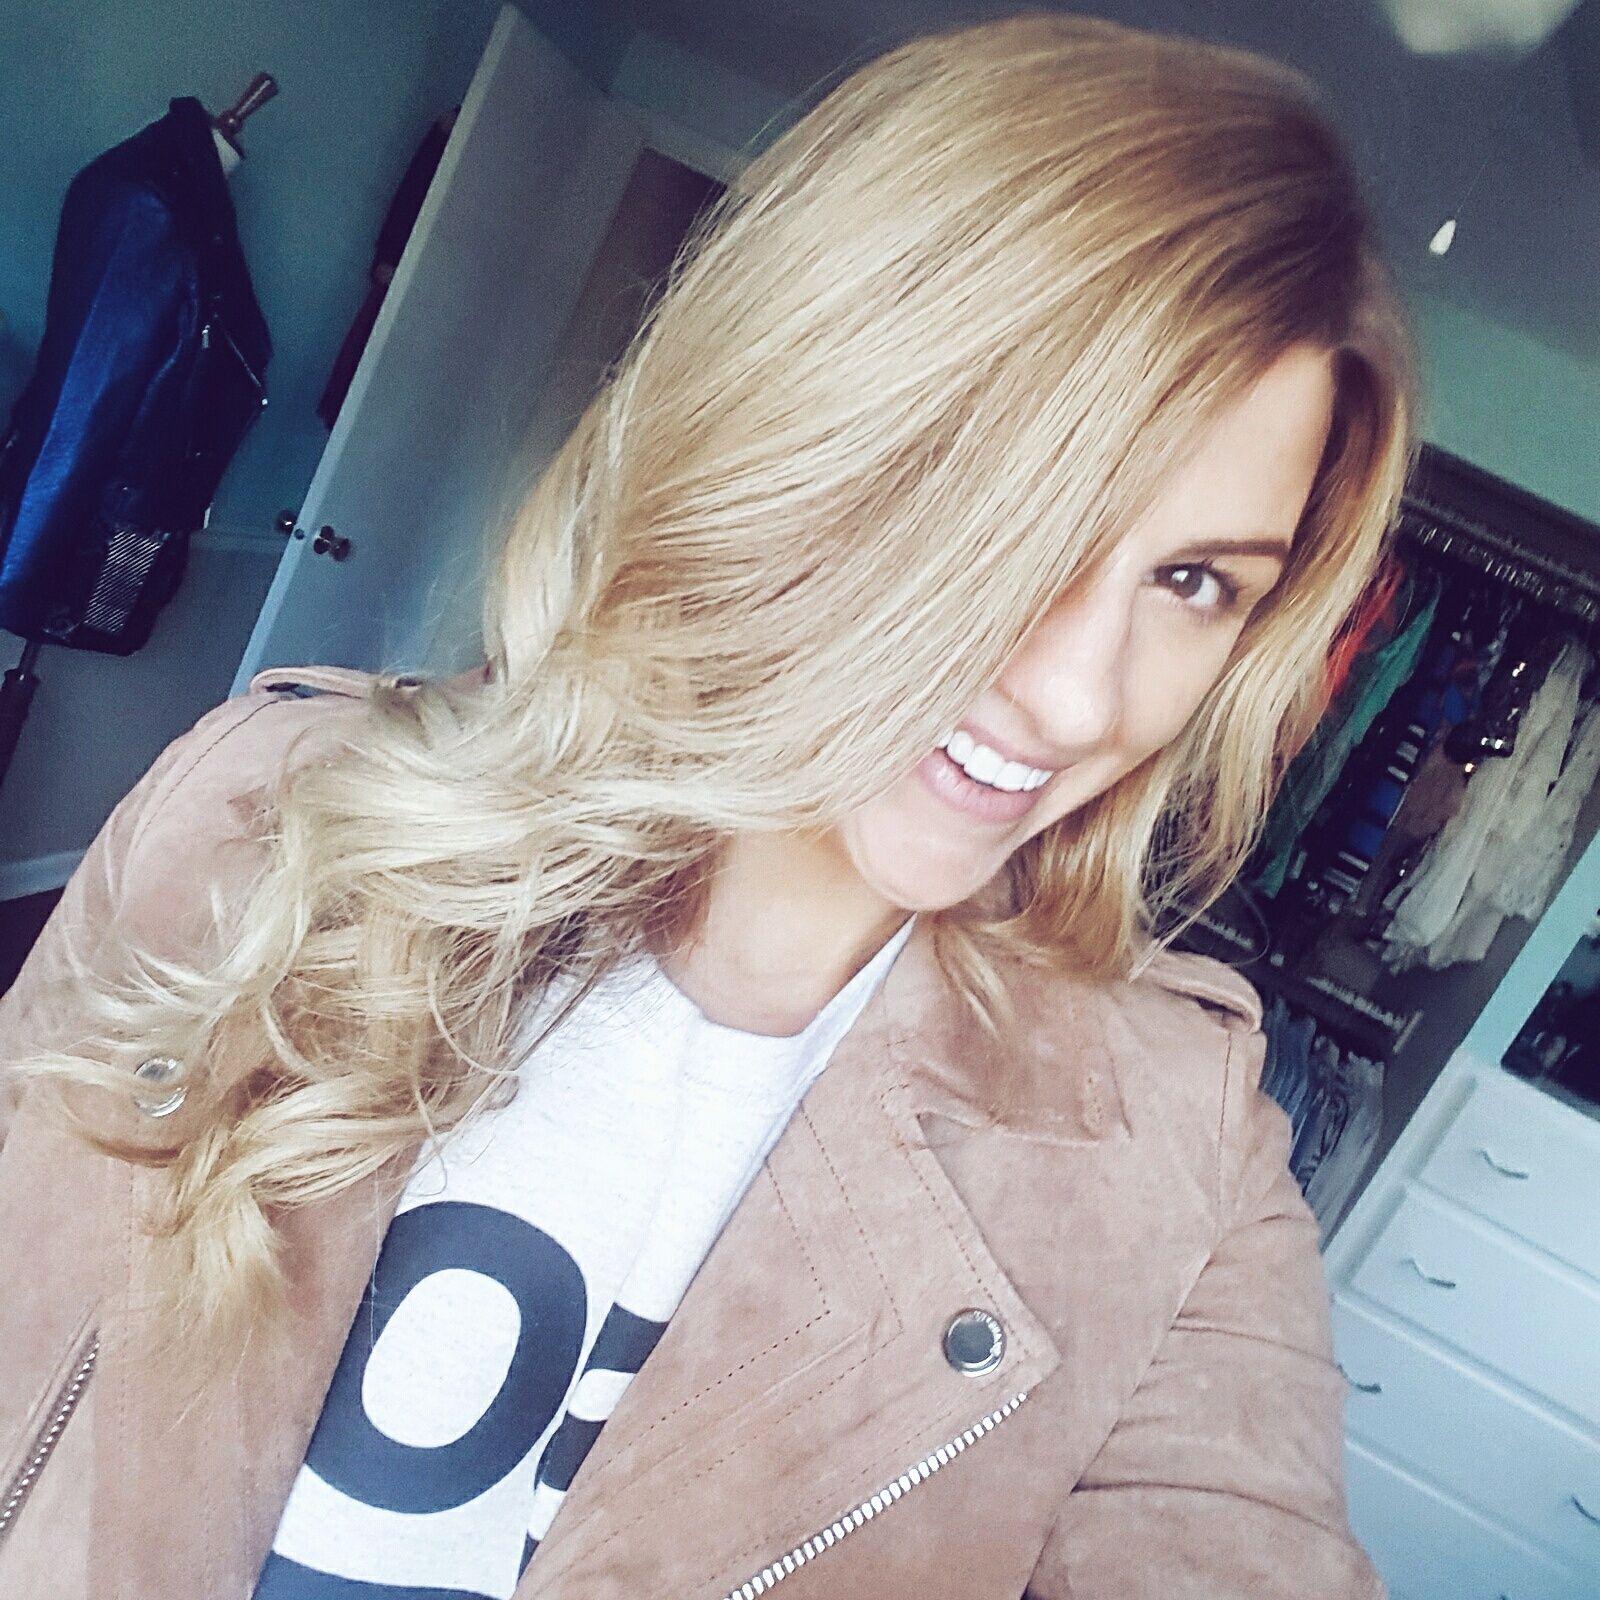 Ashley from LSR blonde hair